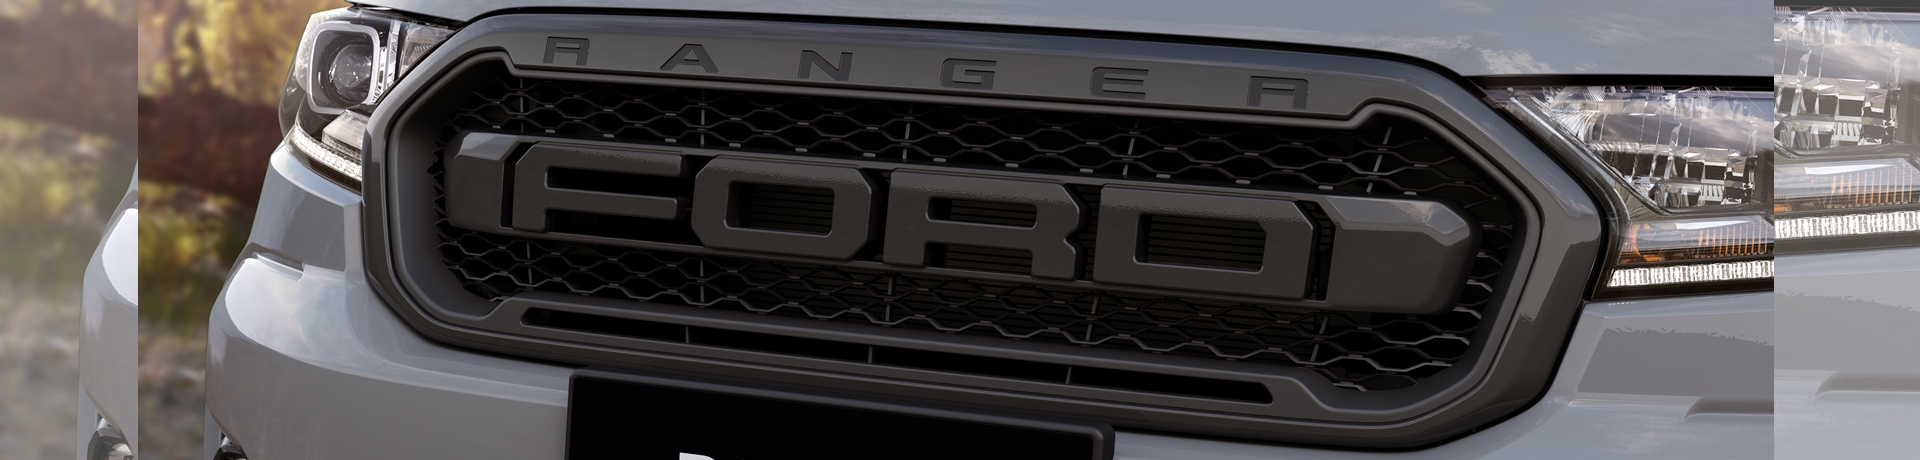 fx4 max ford grille